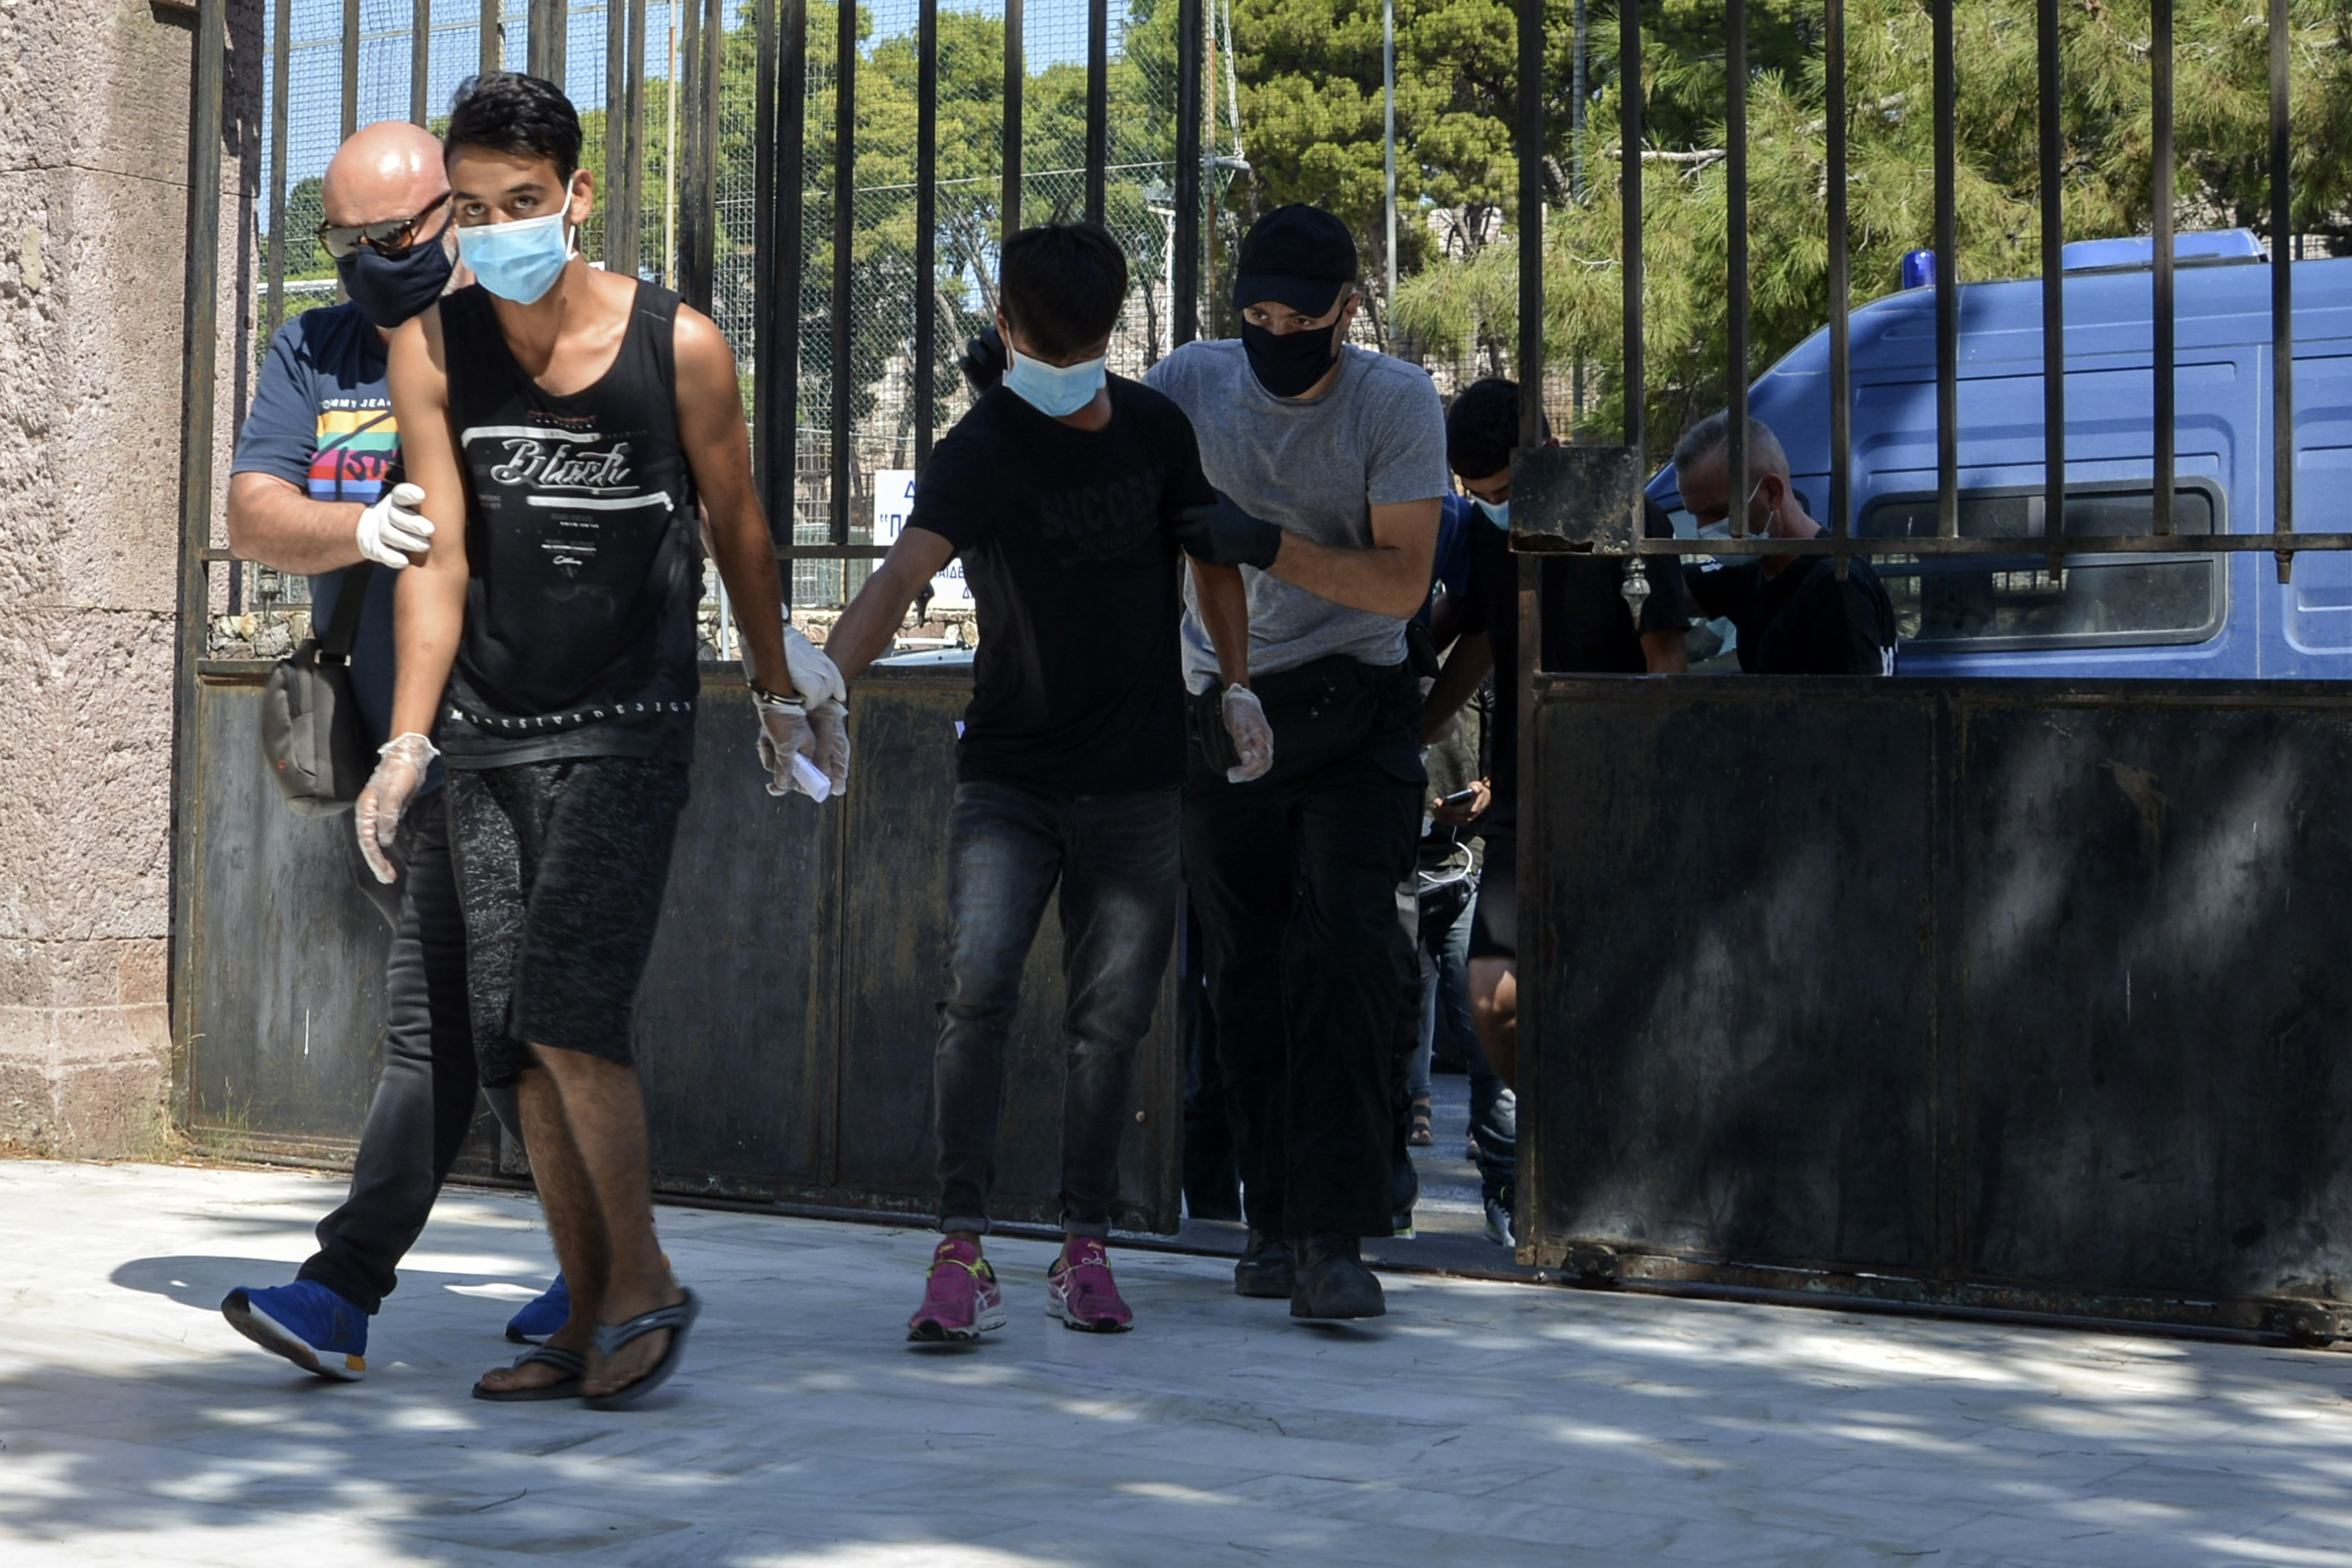 Suspects, all from Afghanistan escorted by plain clothes policemen and wearing face masks, arrive at a court in Mytilene, the capital of the northeastern Aegean island of Lesbos, Greece, Wednesday, Sept. 16, 2020. The government says the fires in Moria refugee camp were set deliberately by the Afghan migrants protesting a coronavirus lockdown, and authorities on Tuesday announced the arrests of six suspect, include two 17-year-olds, in the case. (AP Photo/Panagiotis Balaskas)